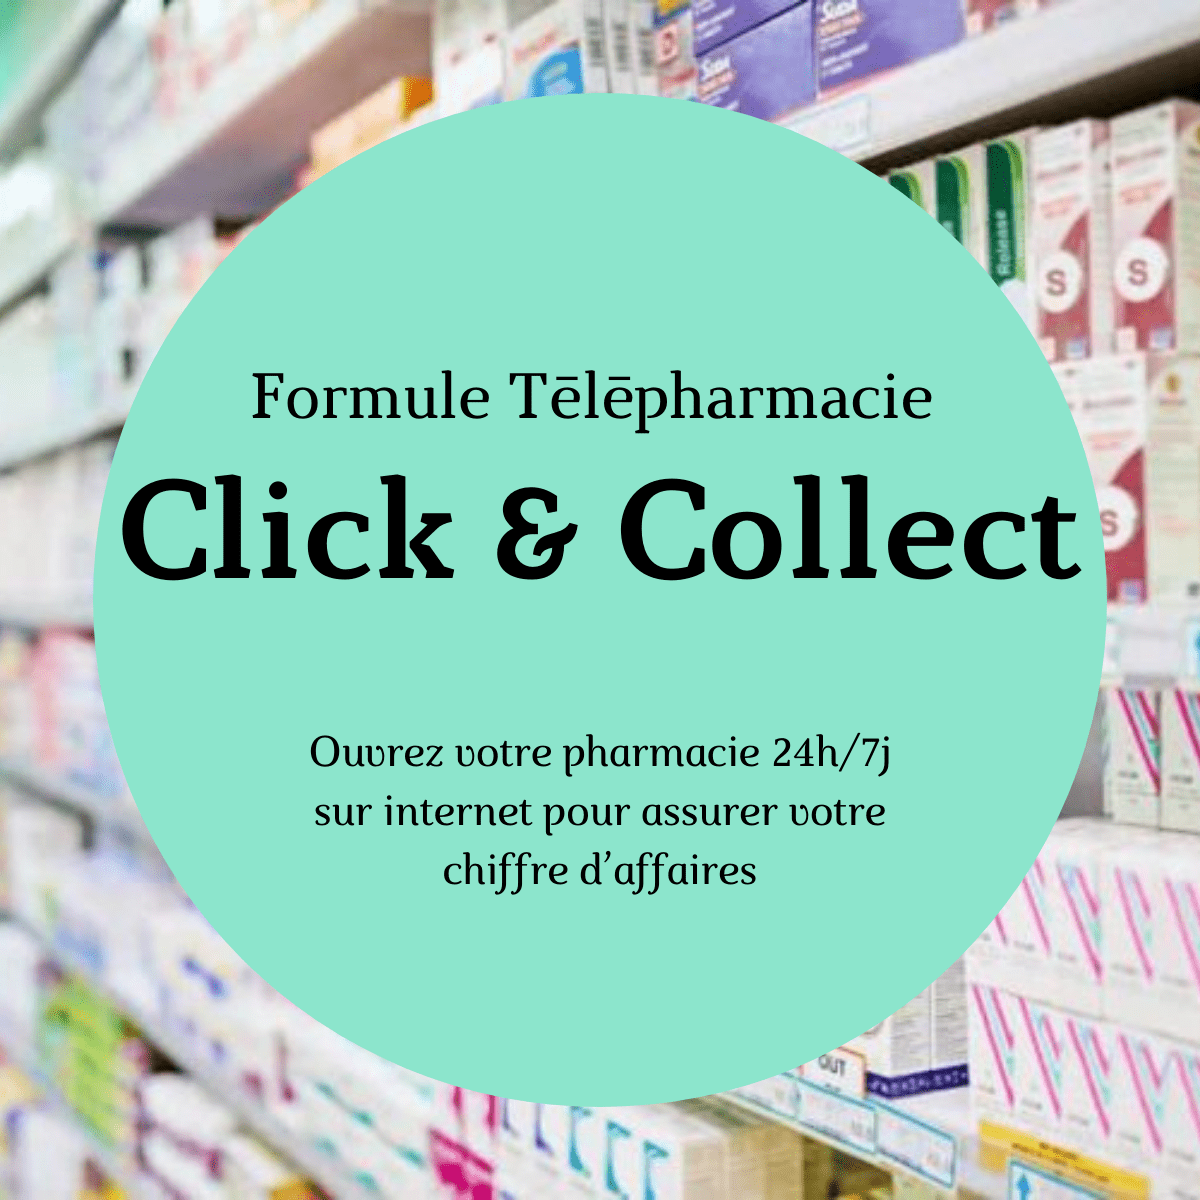 Formule Click & collect pharmacie